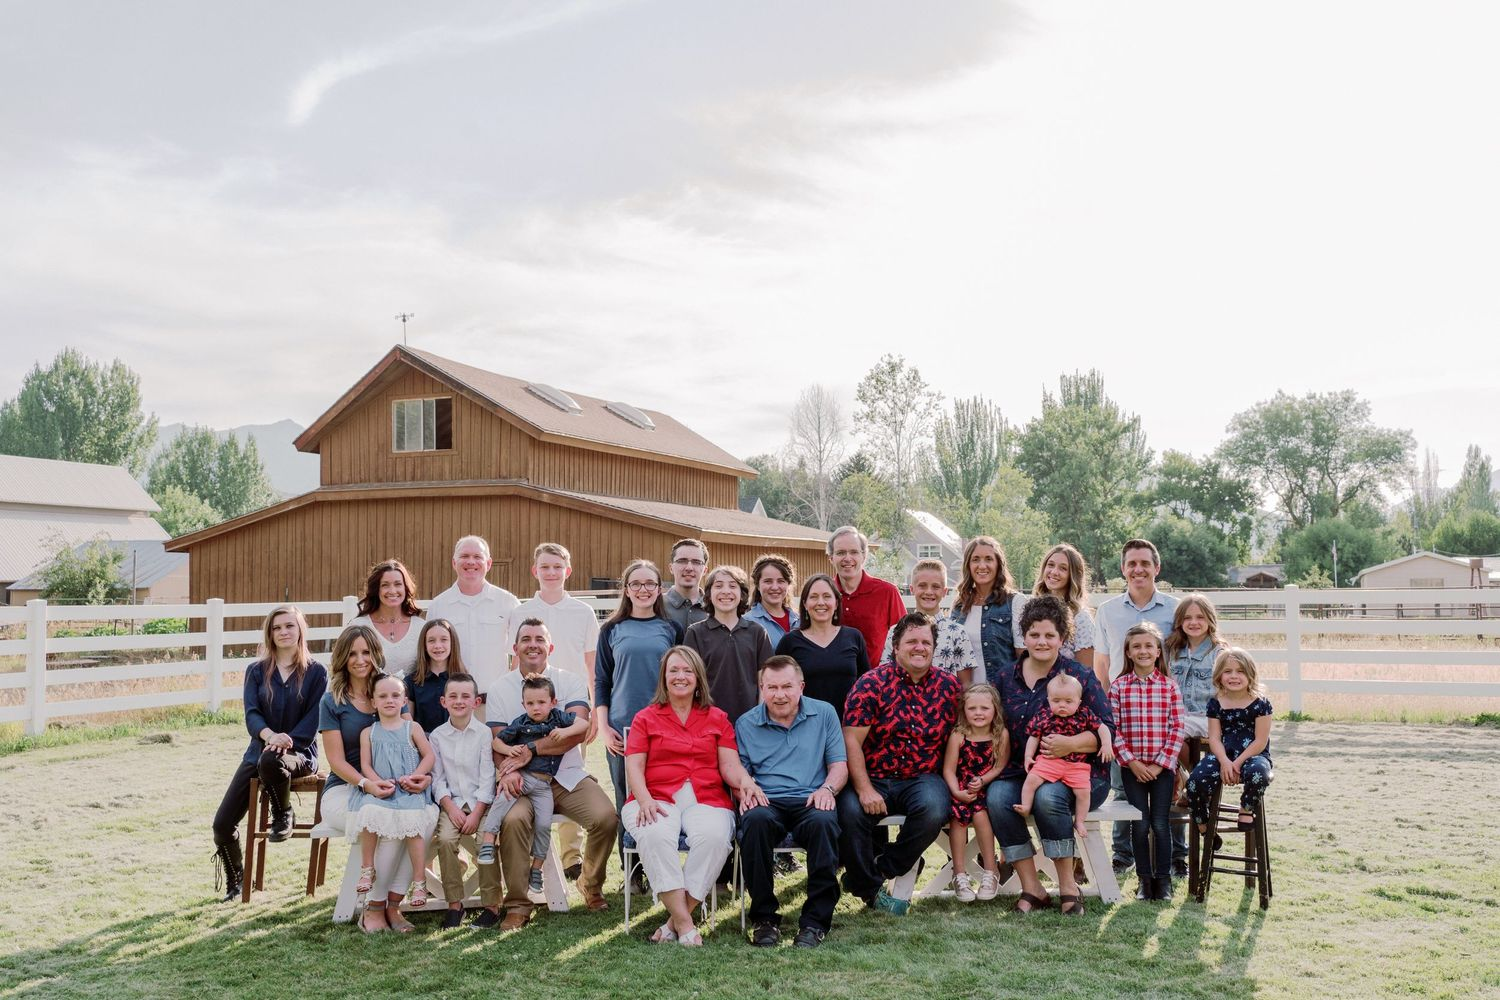 extended family photography session shoot photo Utah kaysville Huntsville